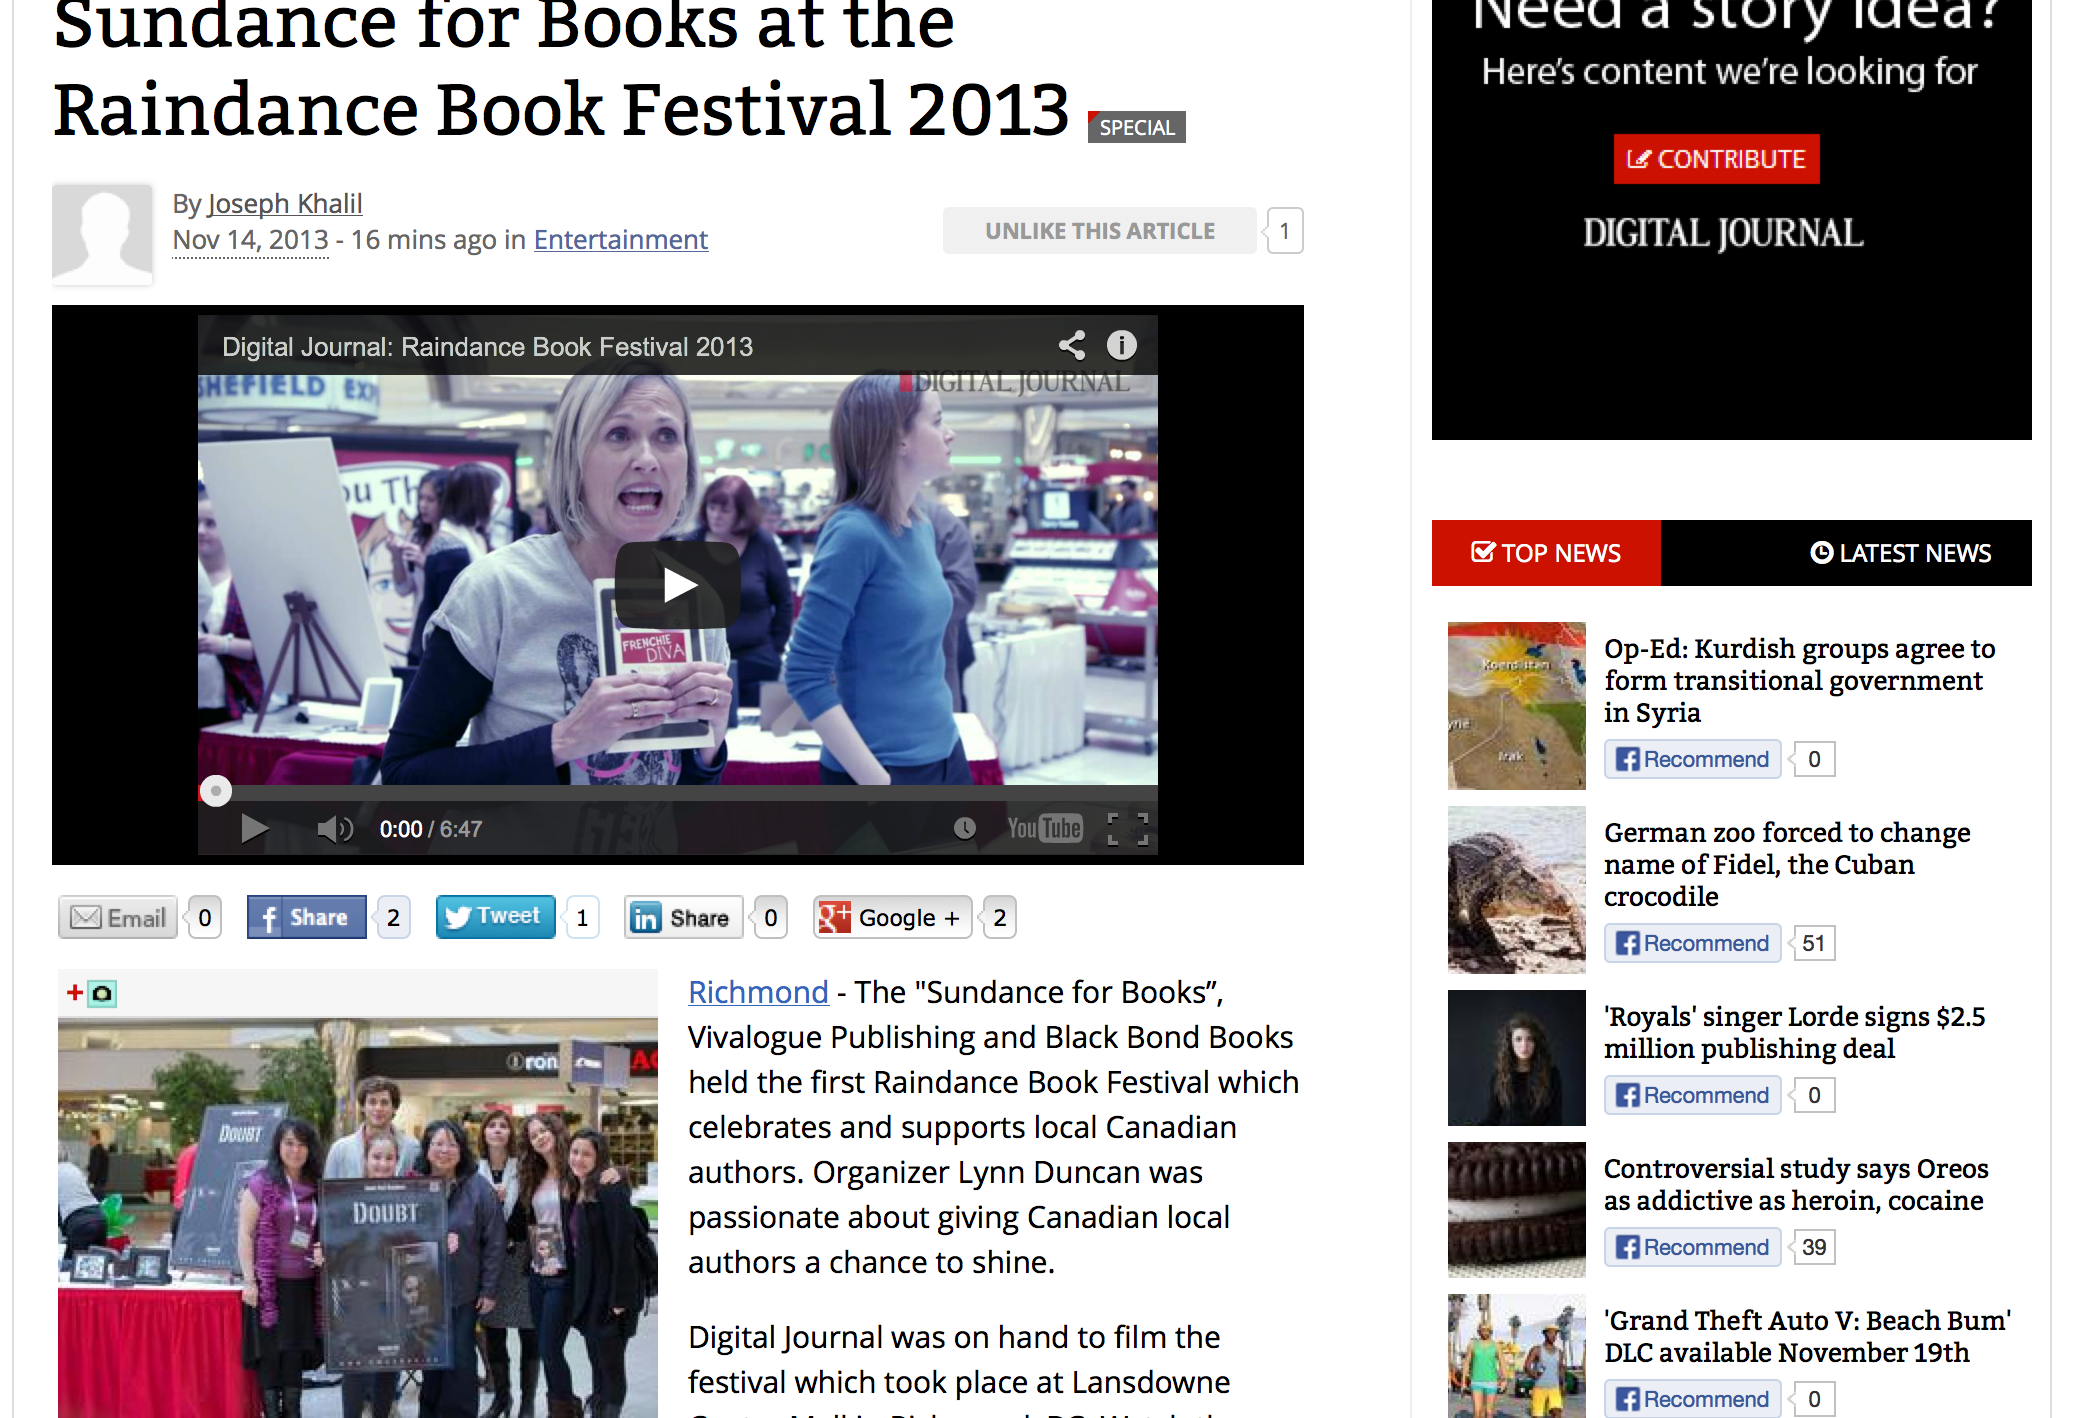 Digital Journal article featuring Doubt and Raindance Book Festival